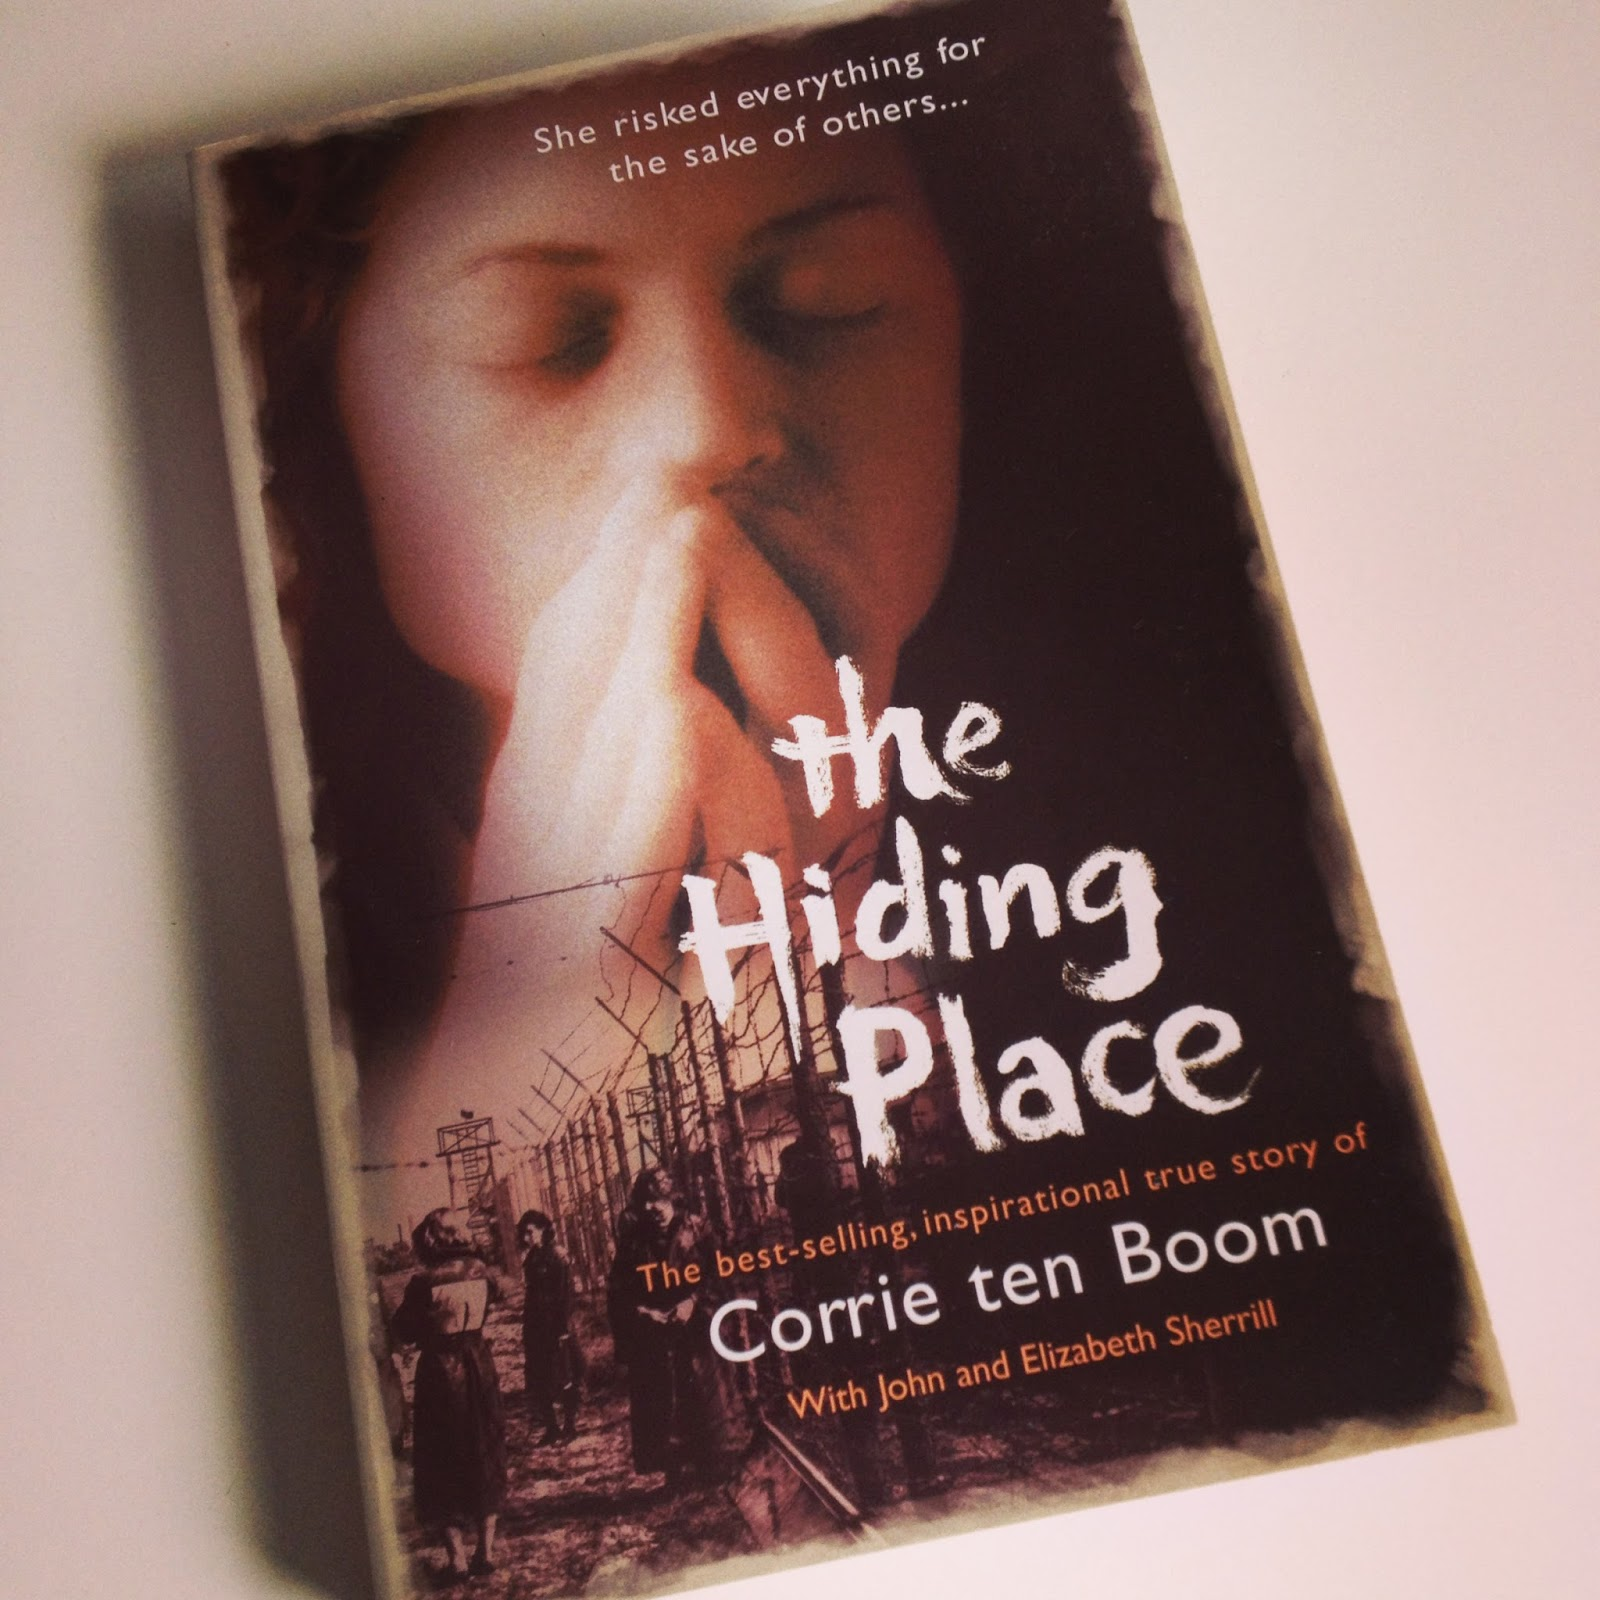 Poppy Sparkles lifestyle blog: :: The Hiding Place by Corrie ten Boom #books #Christian #God #Jesus #corrietenboom #testimony #faith